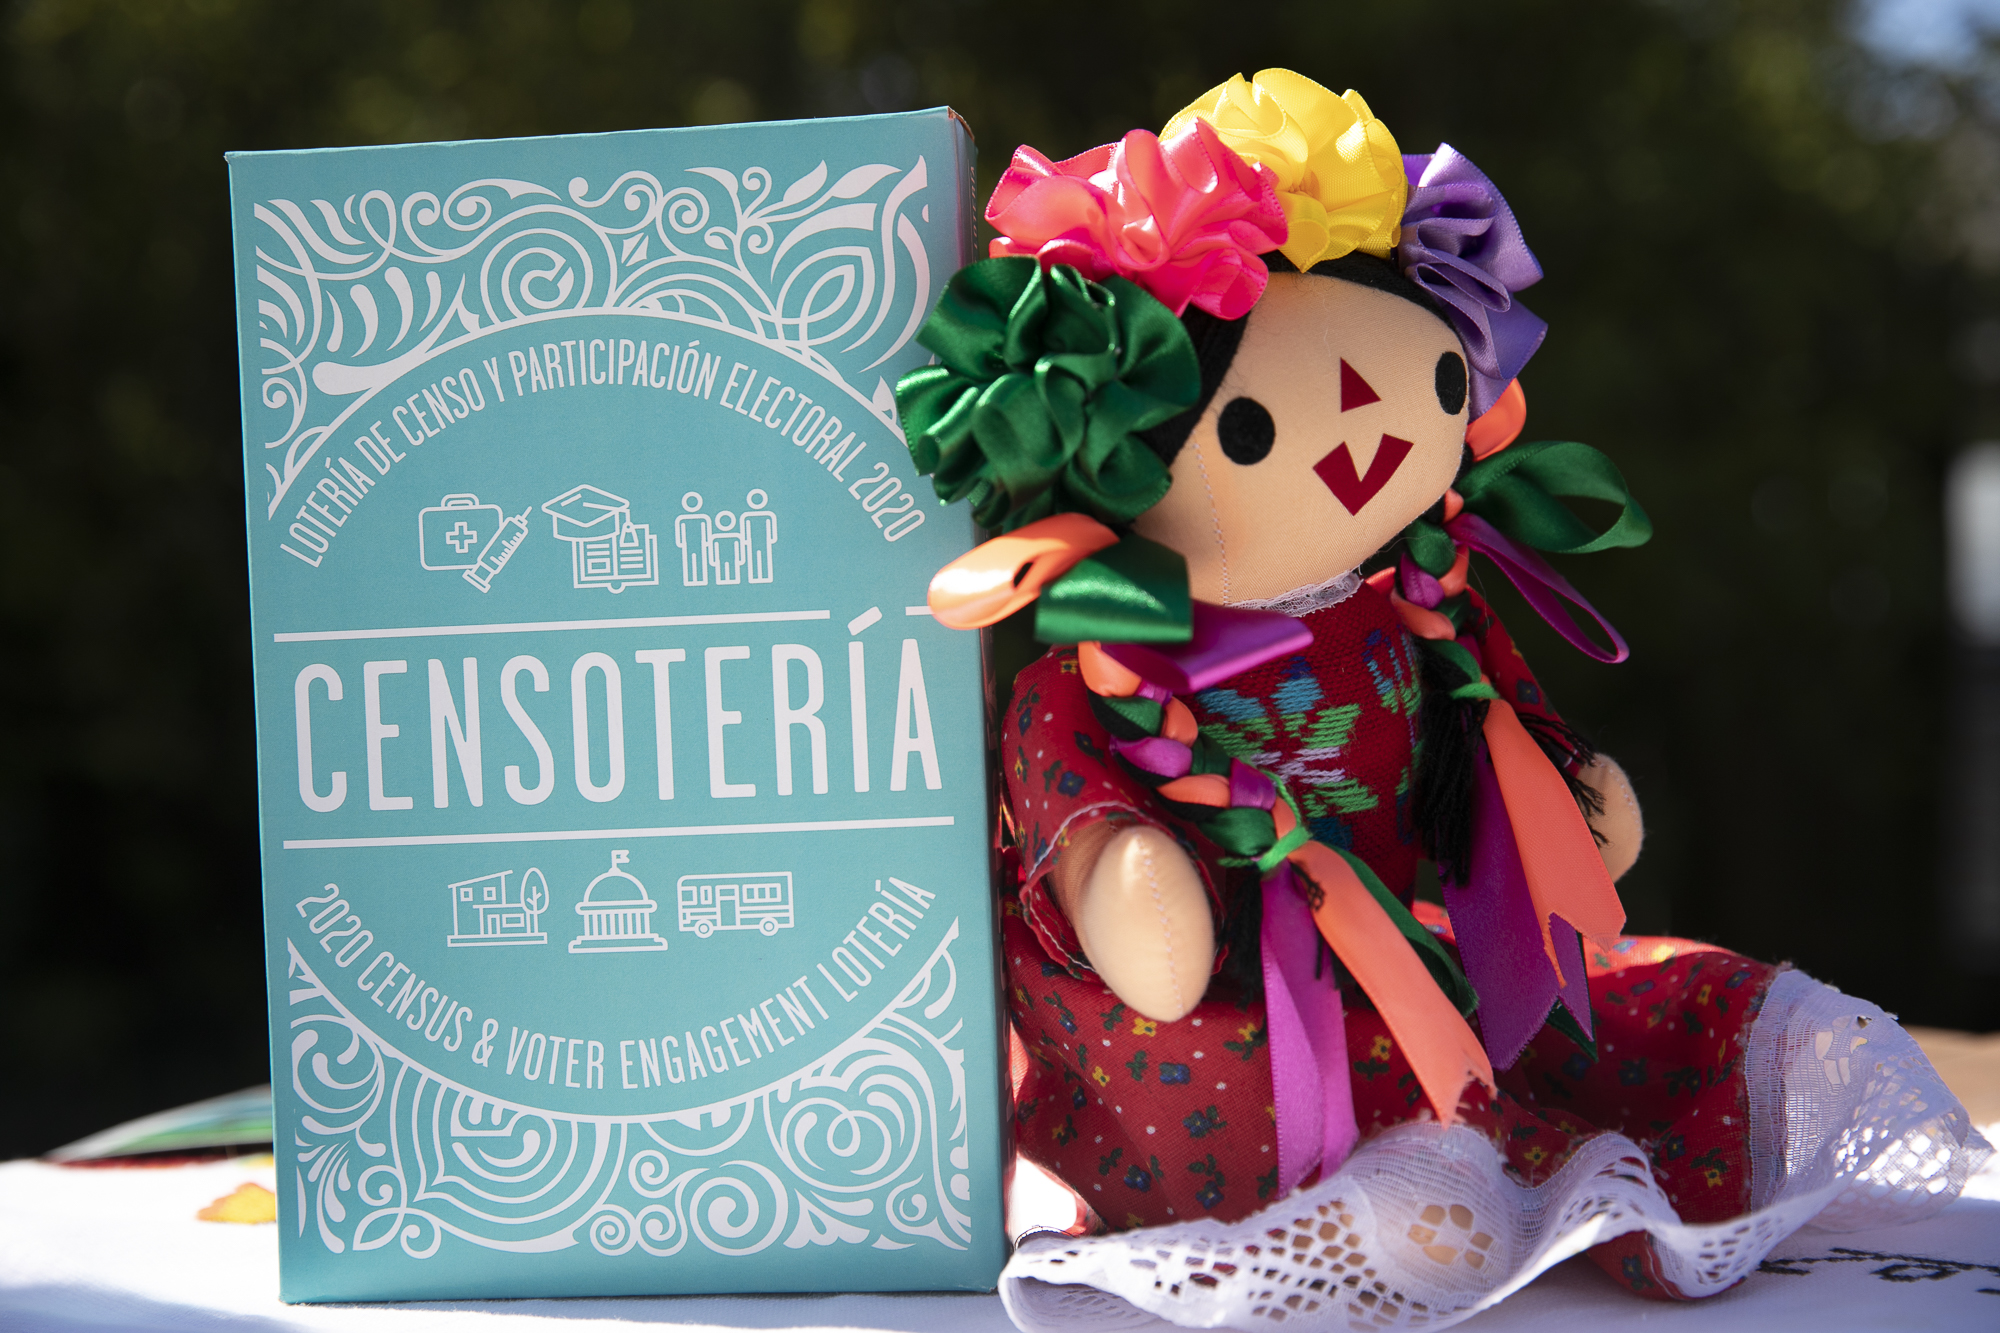 Censoteria, a card game developed at La Luz in Sonoma, is based off of the familiar La Loteria game and helps to engage community members with civics, the census and public services. Photo by Anne Wernikoff for CalMatters